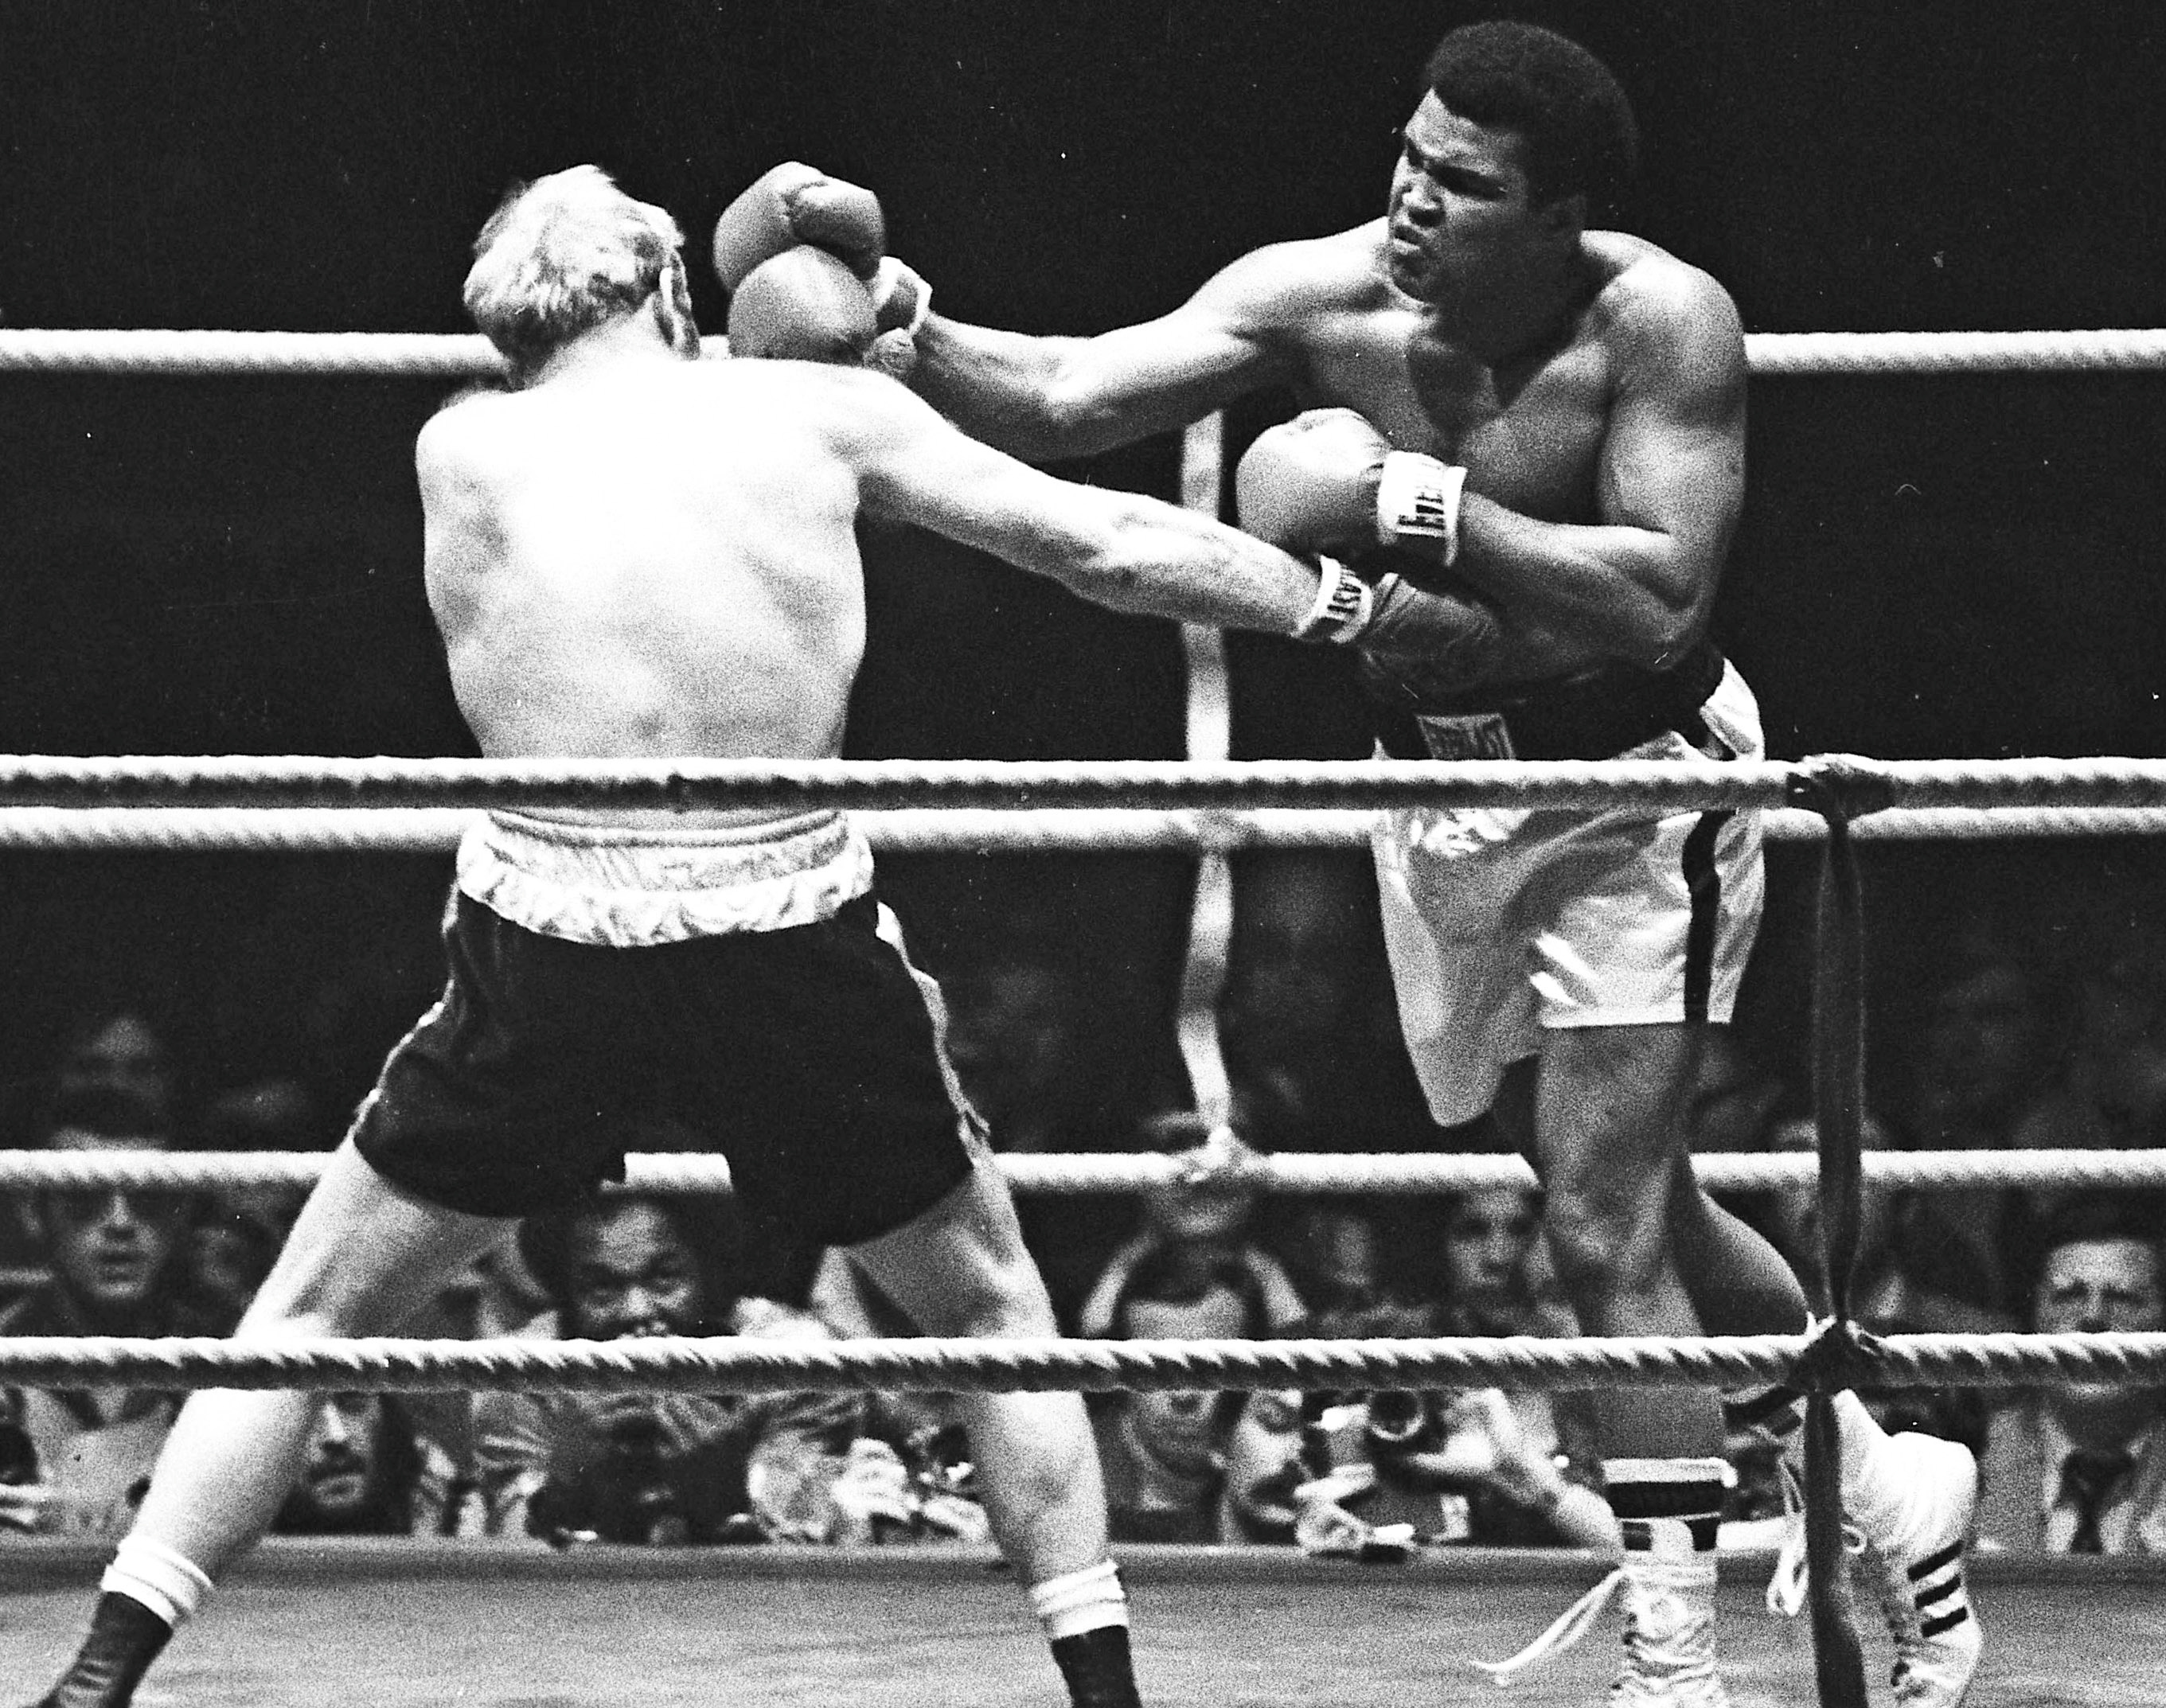 Muhammad Ali (left) punches Richard Dunn for the heavyweight title in Munich, Germany on May 24, 1976. File photo by Action Images/Sporting Pictures via Reuters